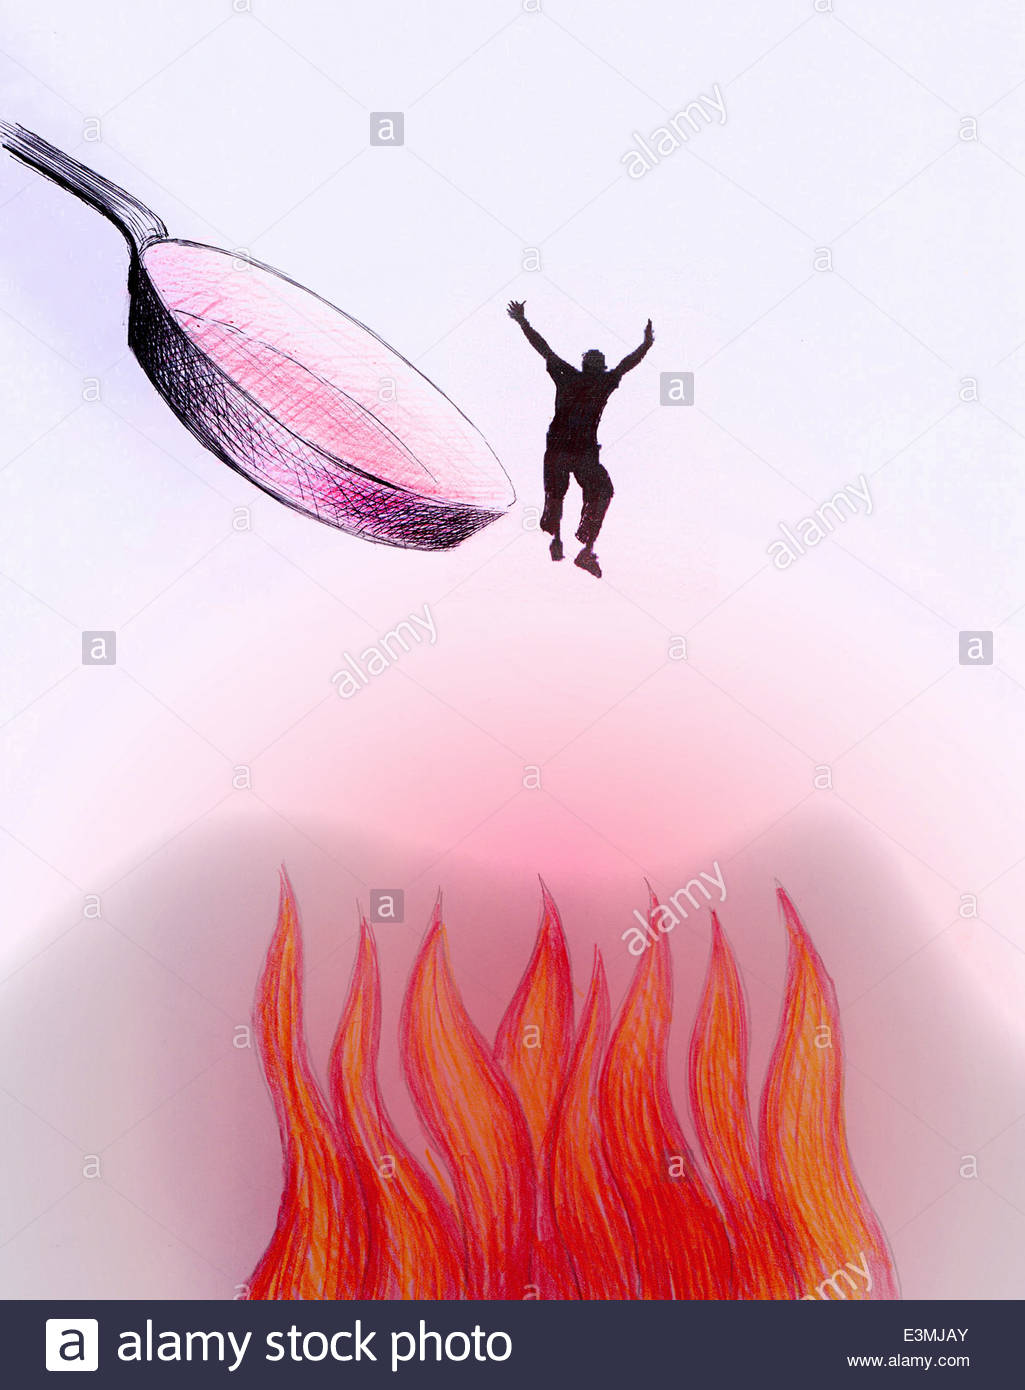 Man Jumping Out Of The Frying Pan And Into The Fire Stock